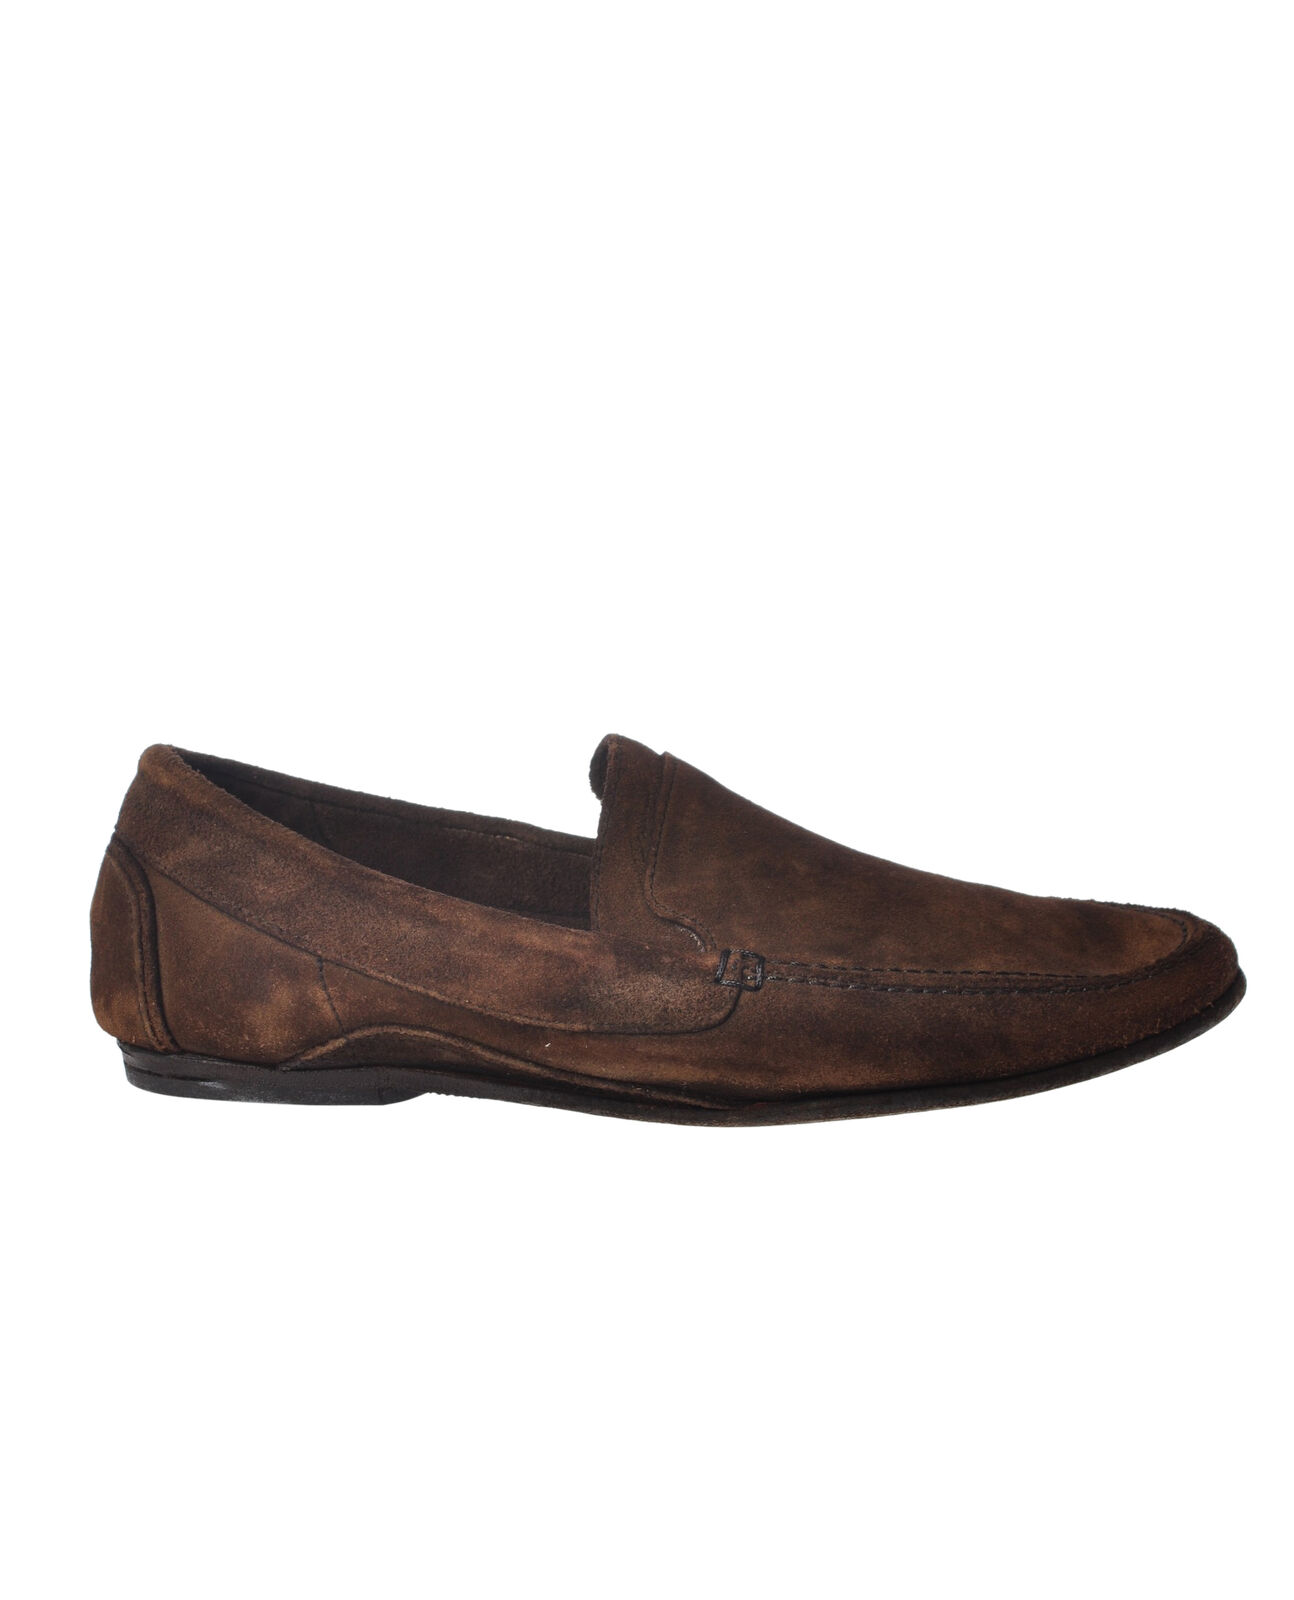 Bruno Bordese  -  Moccasins - Male - Brown - 3454121A182116